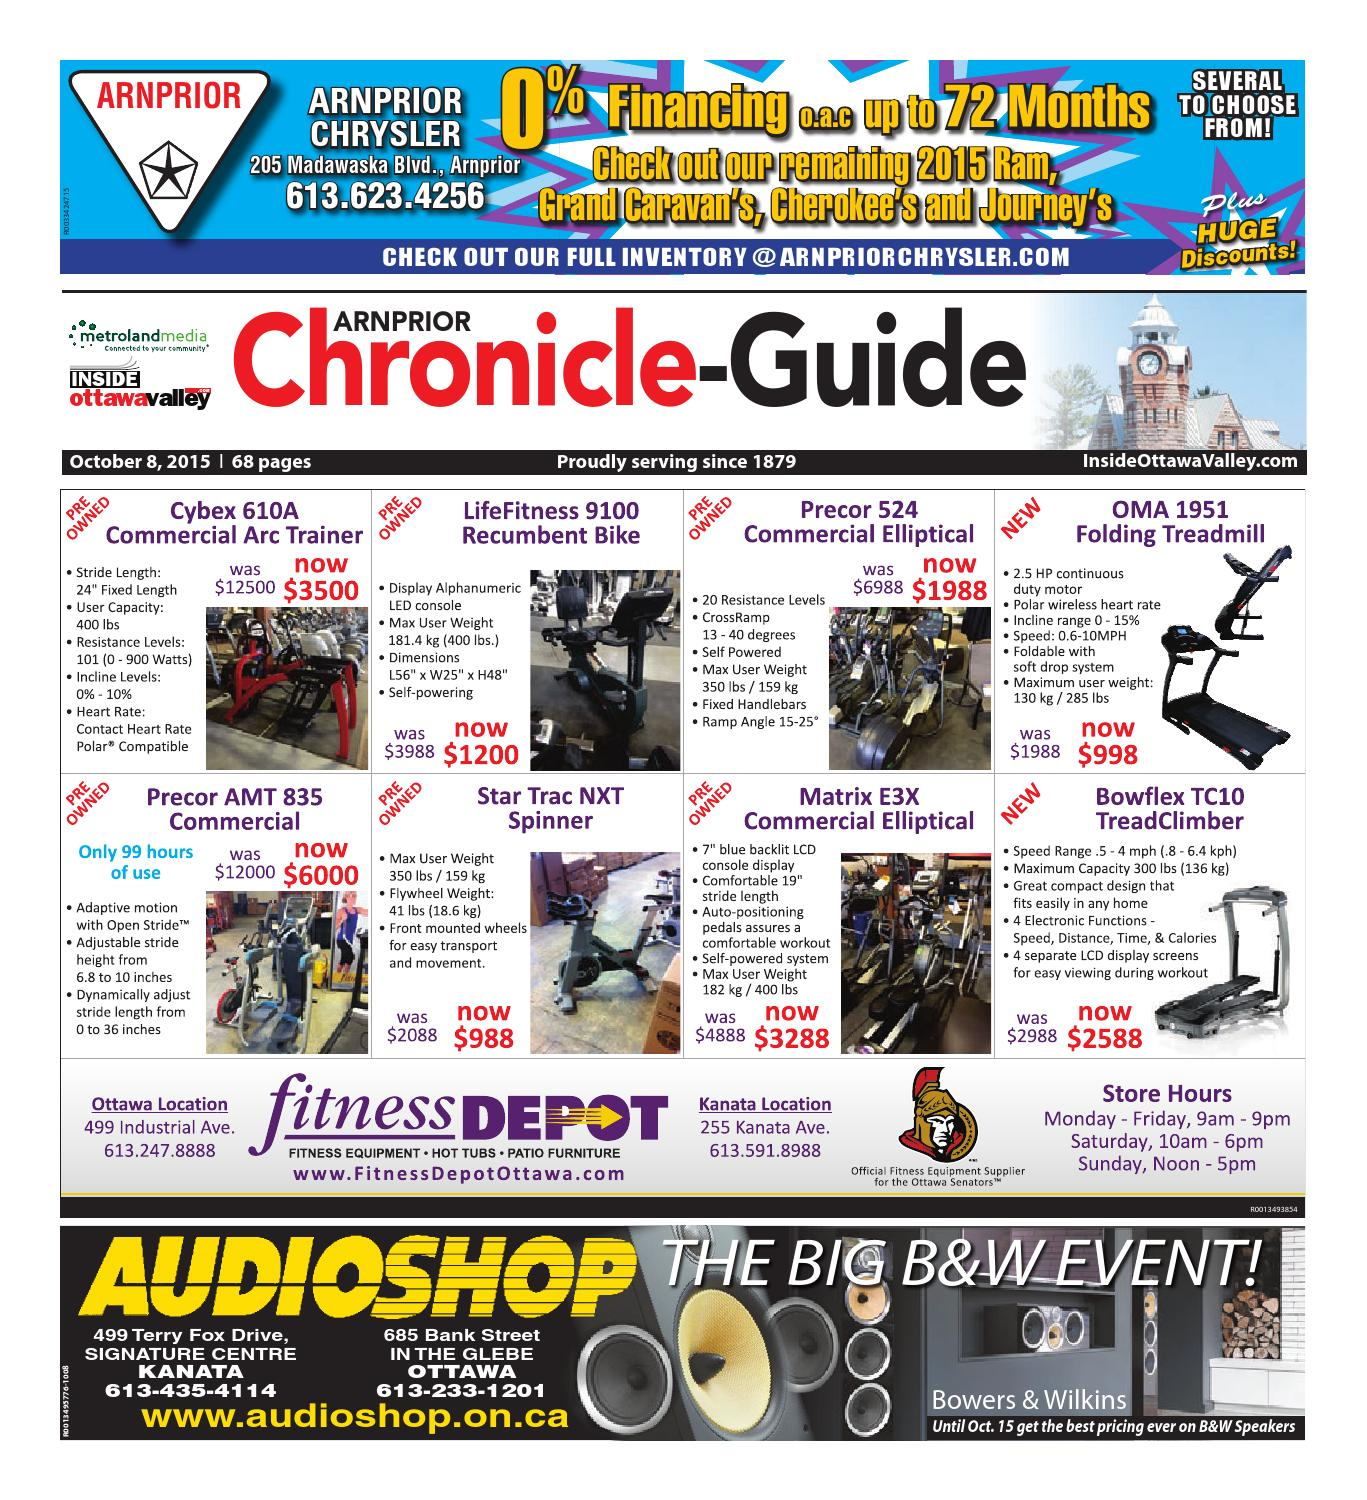 ddc302e0ad Arnprior100815 by Metroland East - Arnprior Chronicle-Guide - issuu